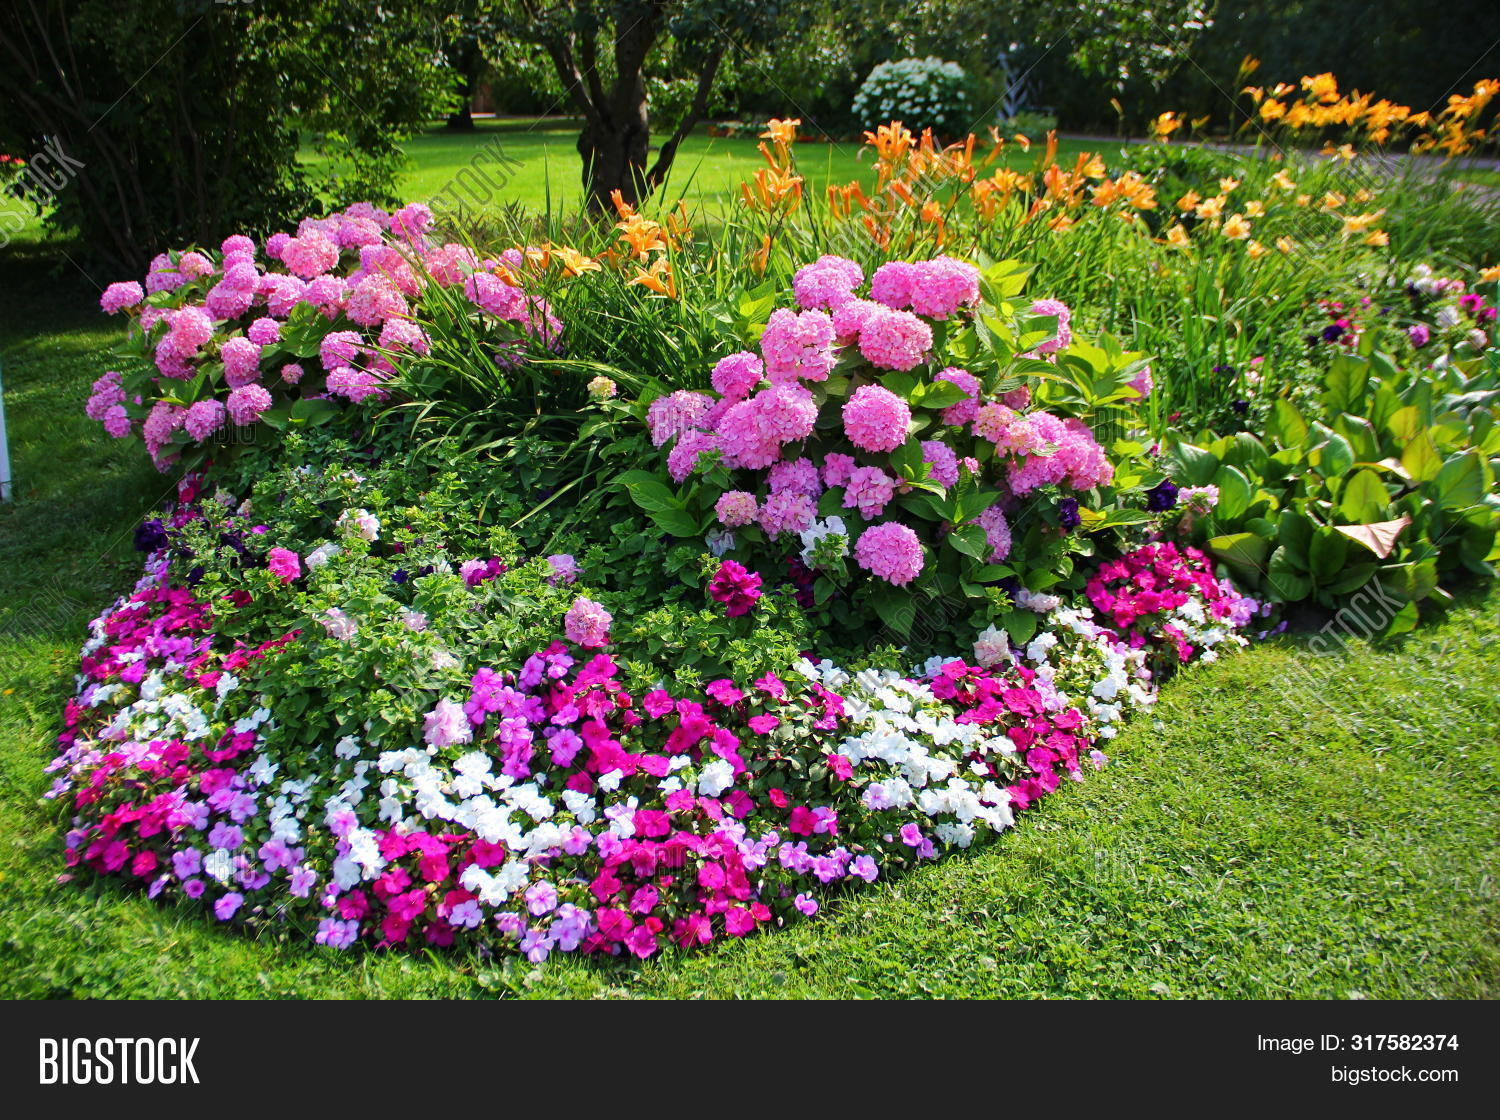 Elegant Flower Bed Two Image Photo Free Trial Bigstock